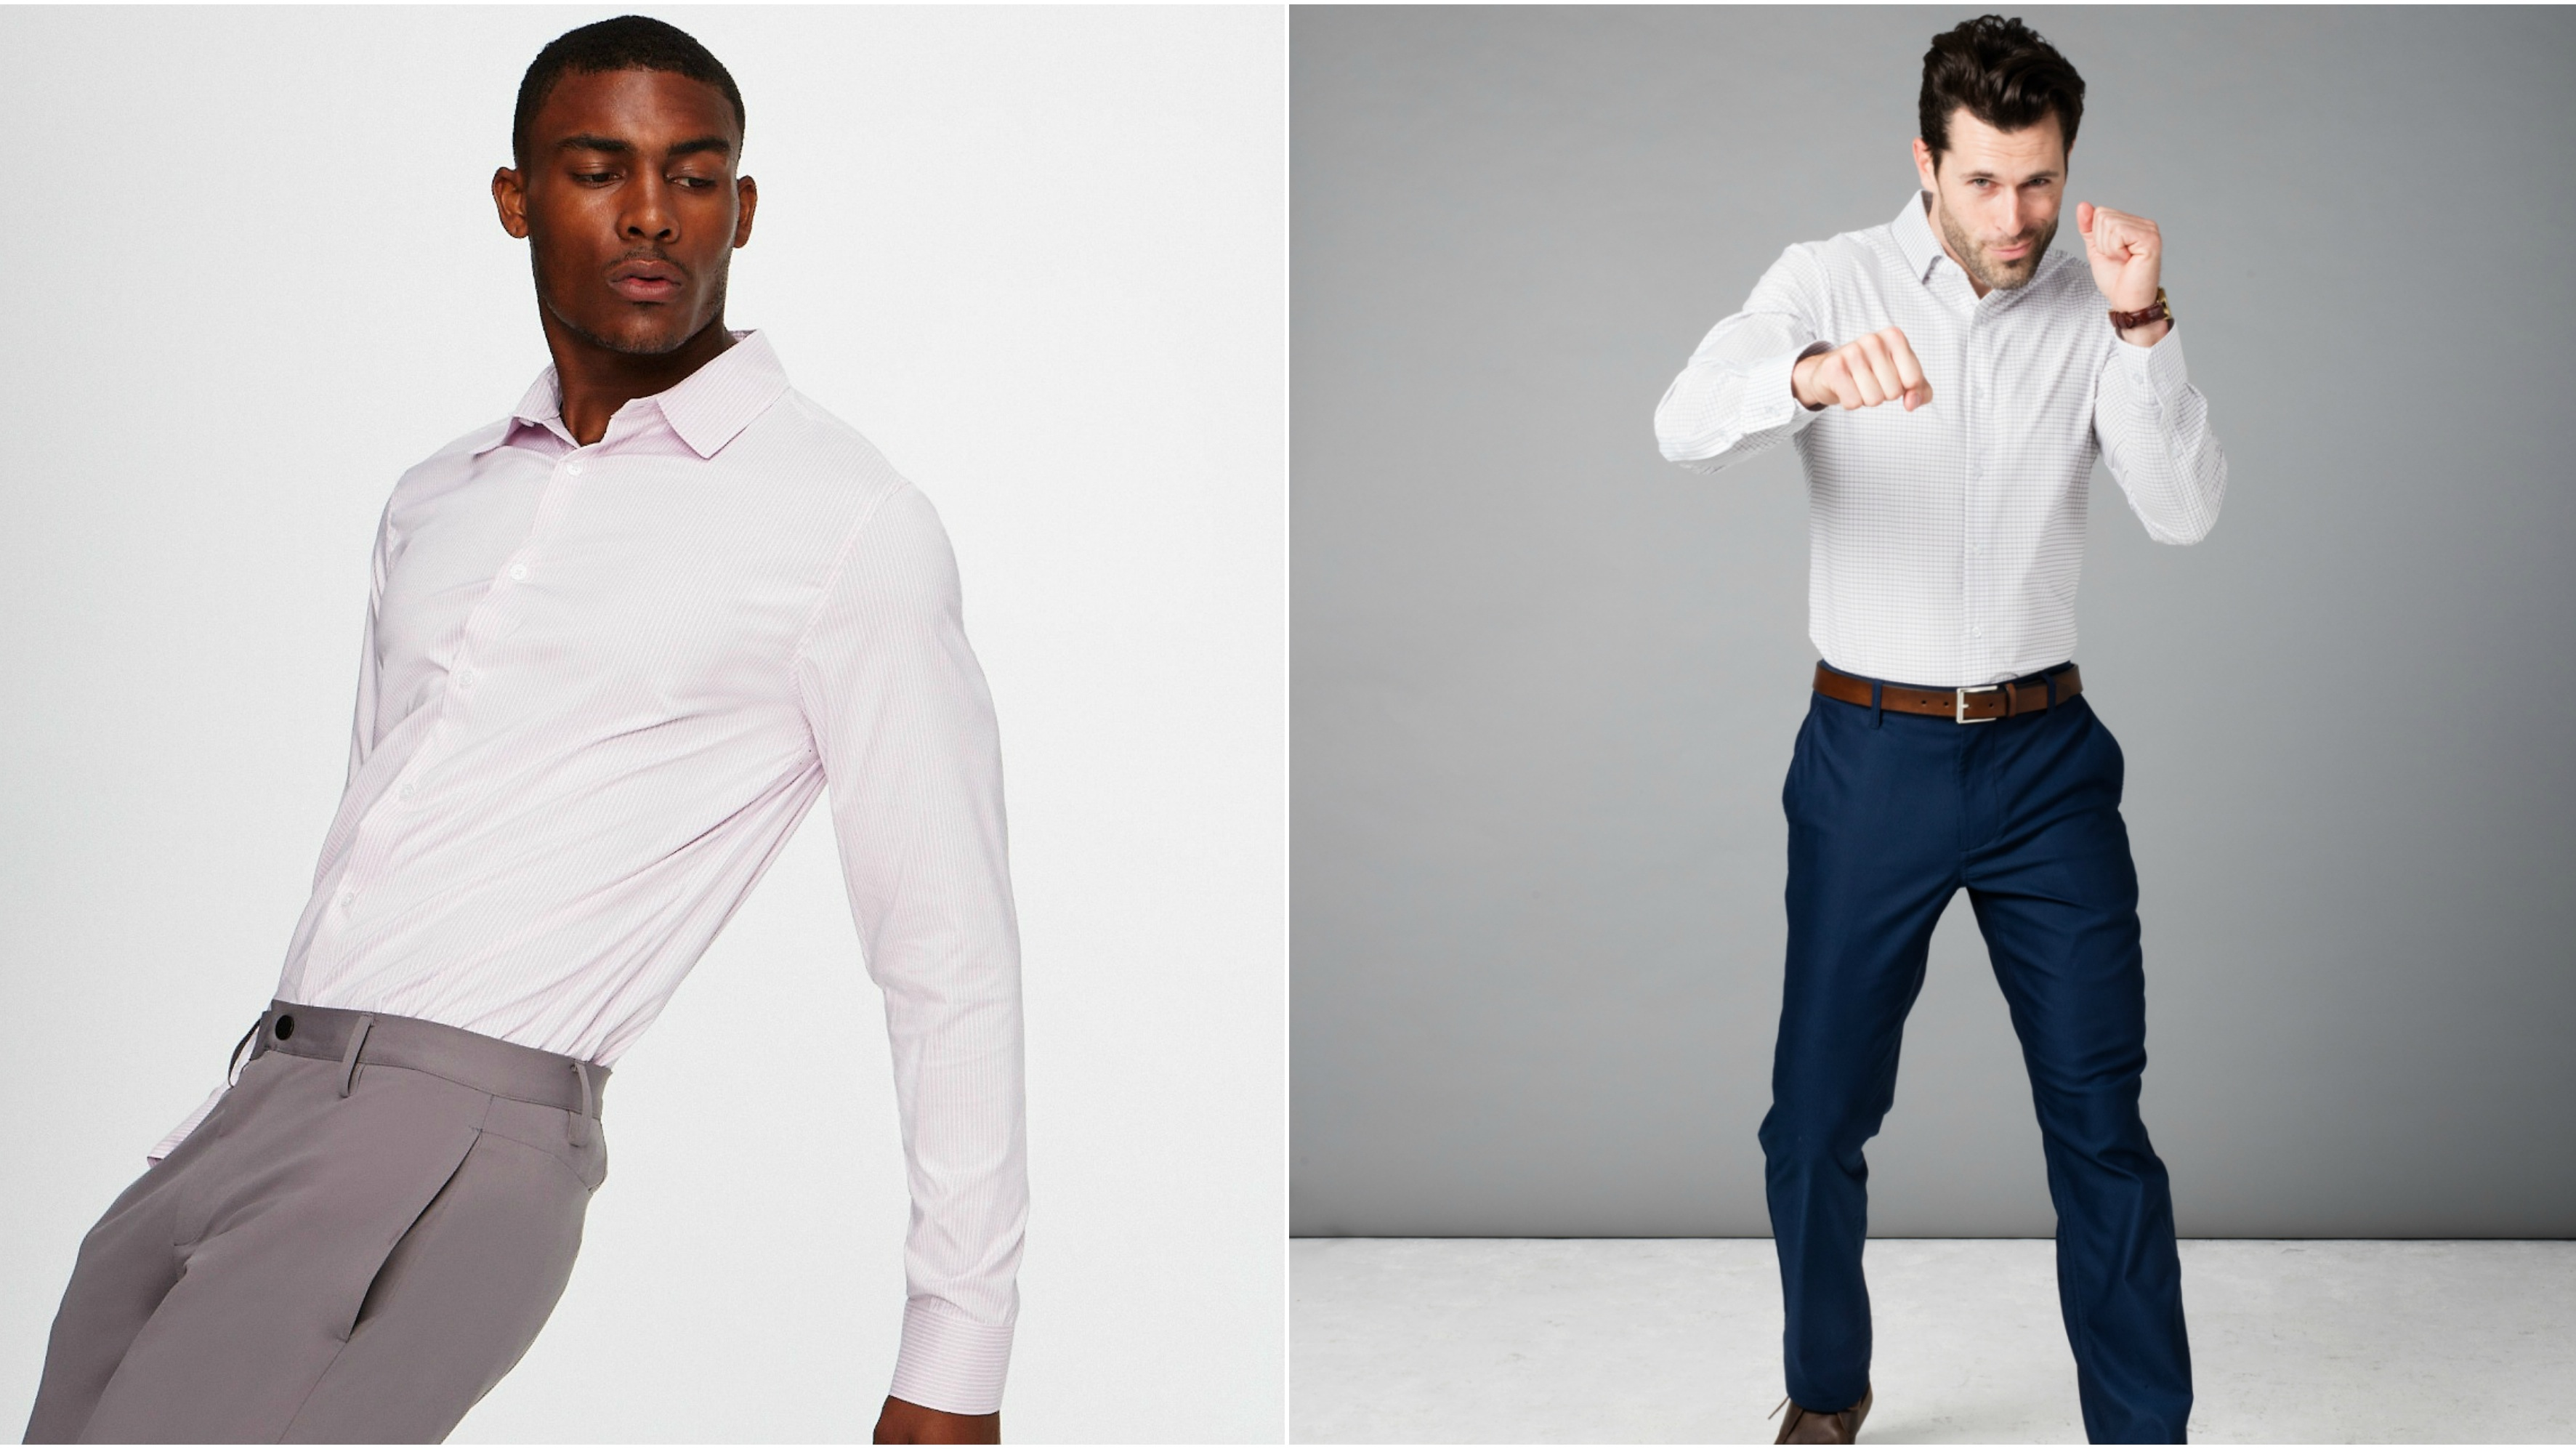 The generation that grew up with Nike Dri-FIT is making dress shirts you could run a marathon in